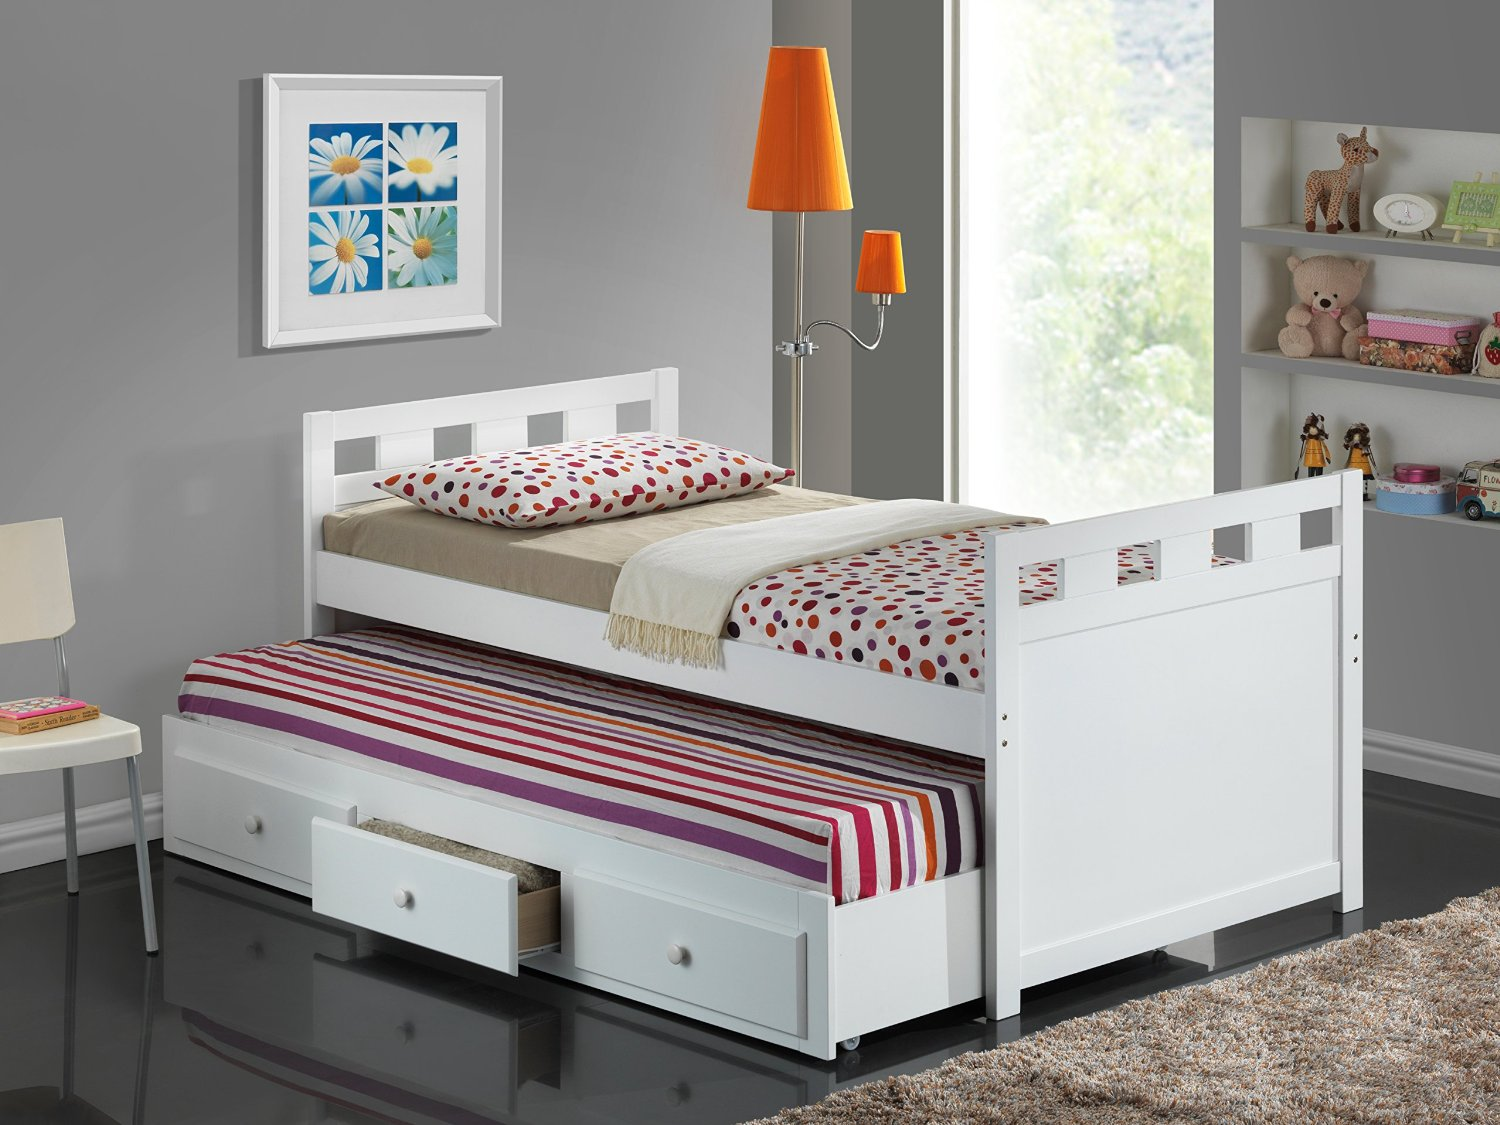 Twin bed with pull out slide out trundle bed underneath for Best beds for small rooms